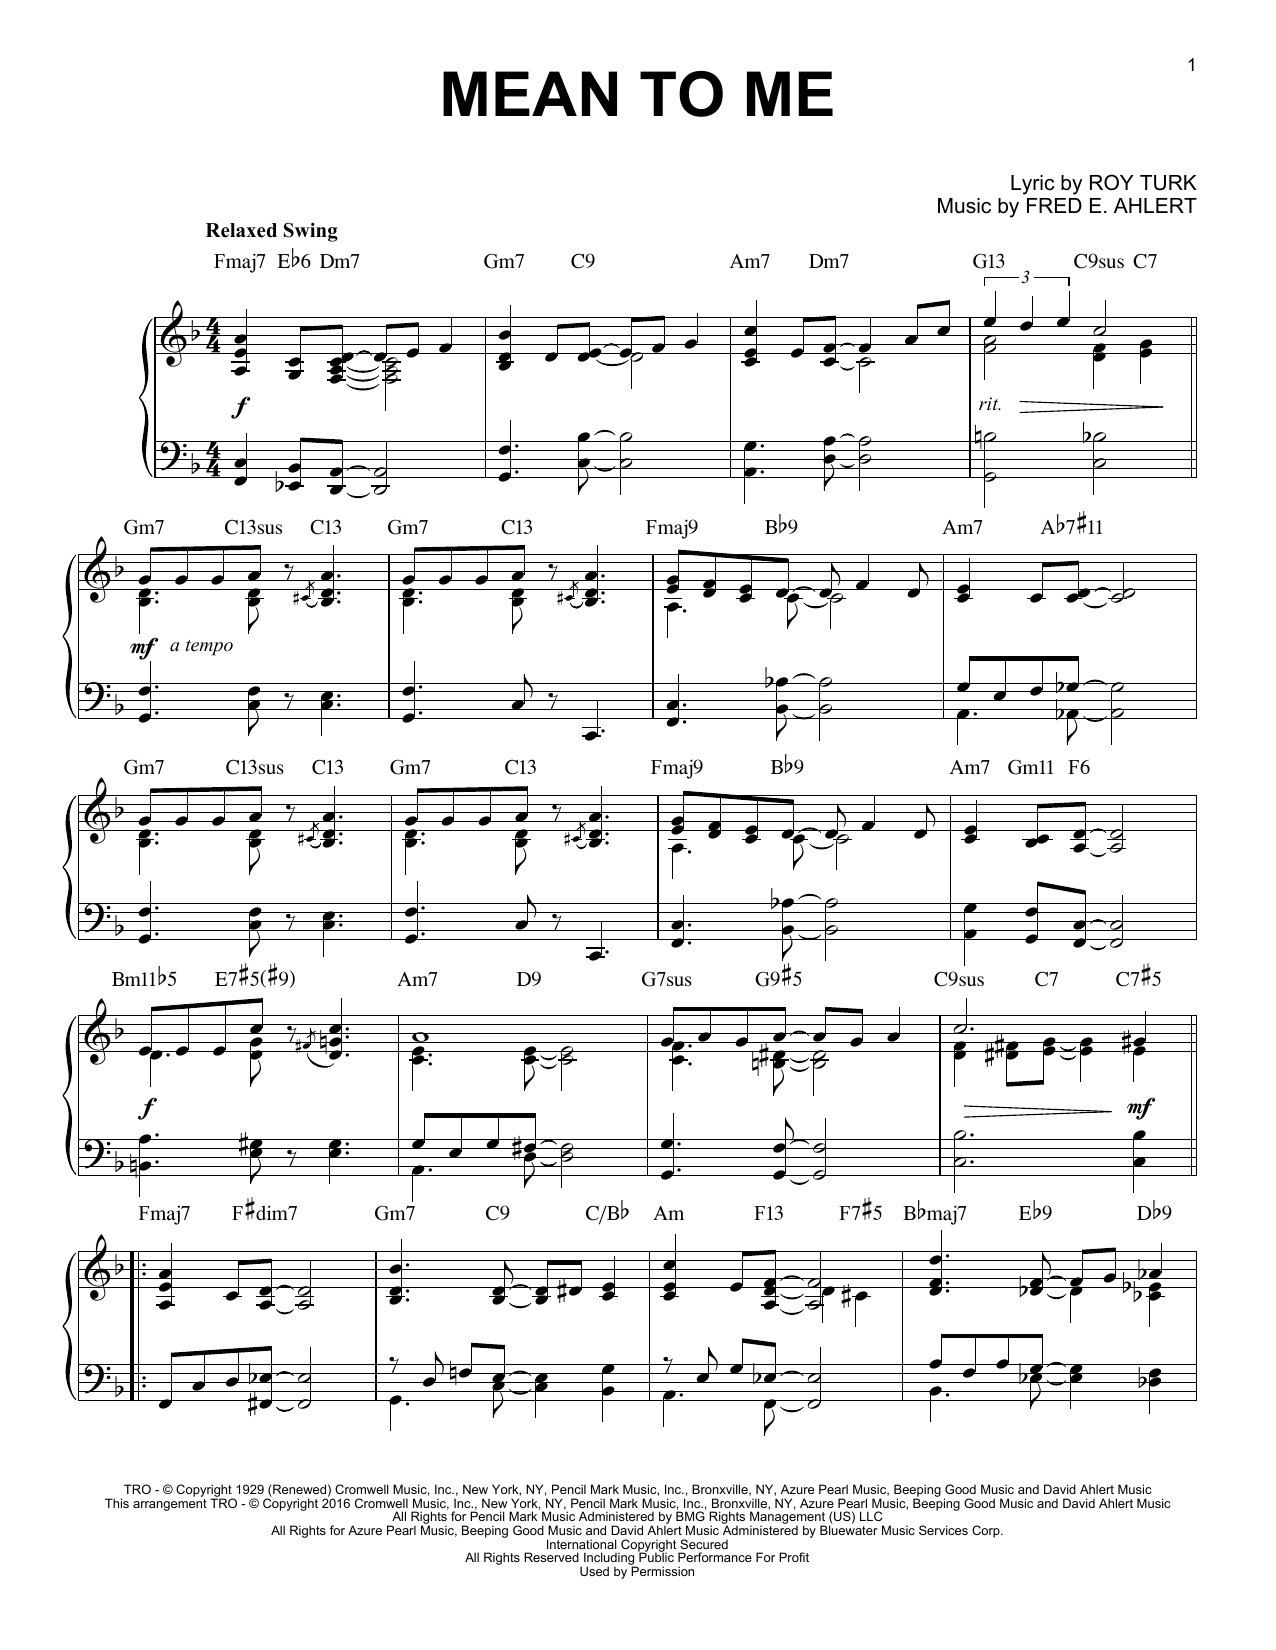 Roy Turk Mean To Me sheet music notes and chords. Download Printable PDF.